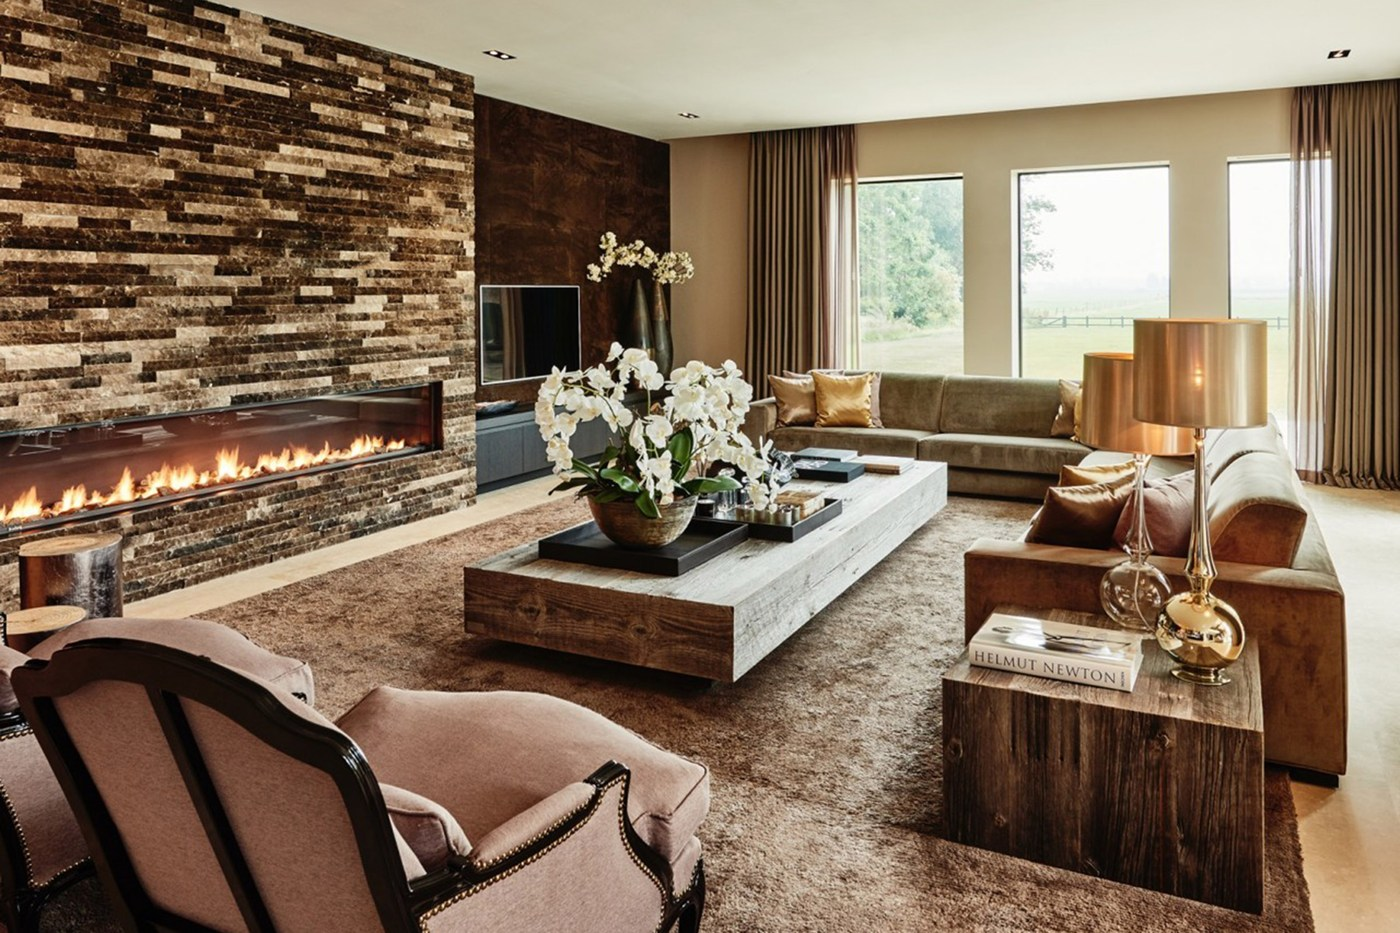 Mendo book Eric Kuster - Top Interior Designers - Metropolitan Luxury - luxury living rooms - glamorous living rooms